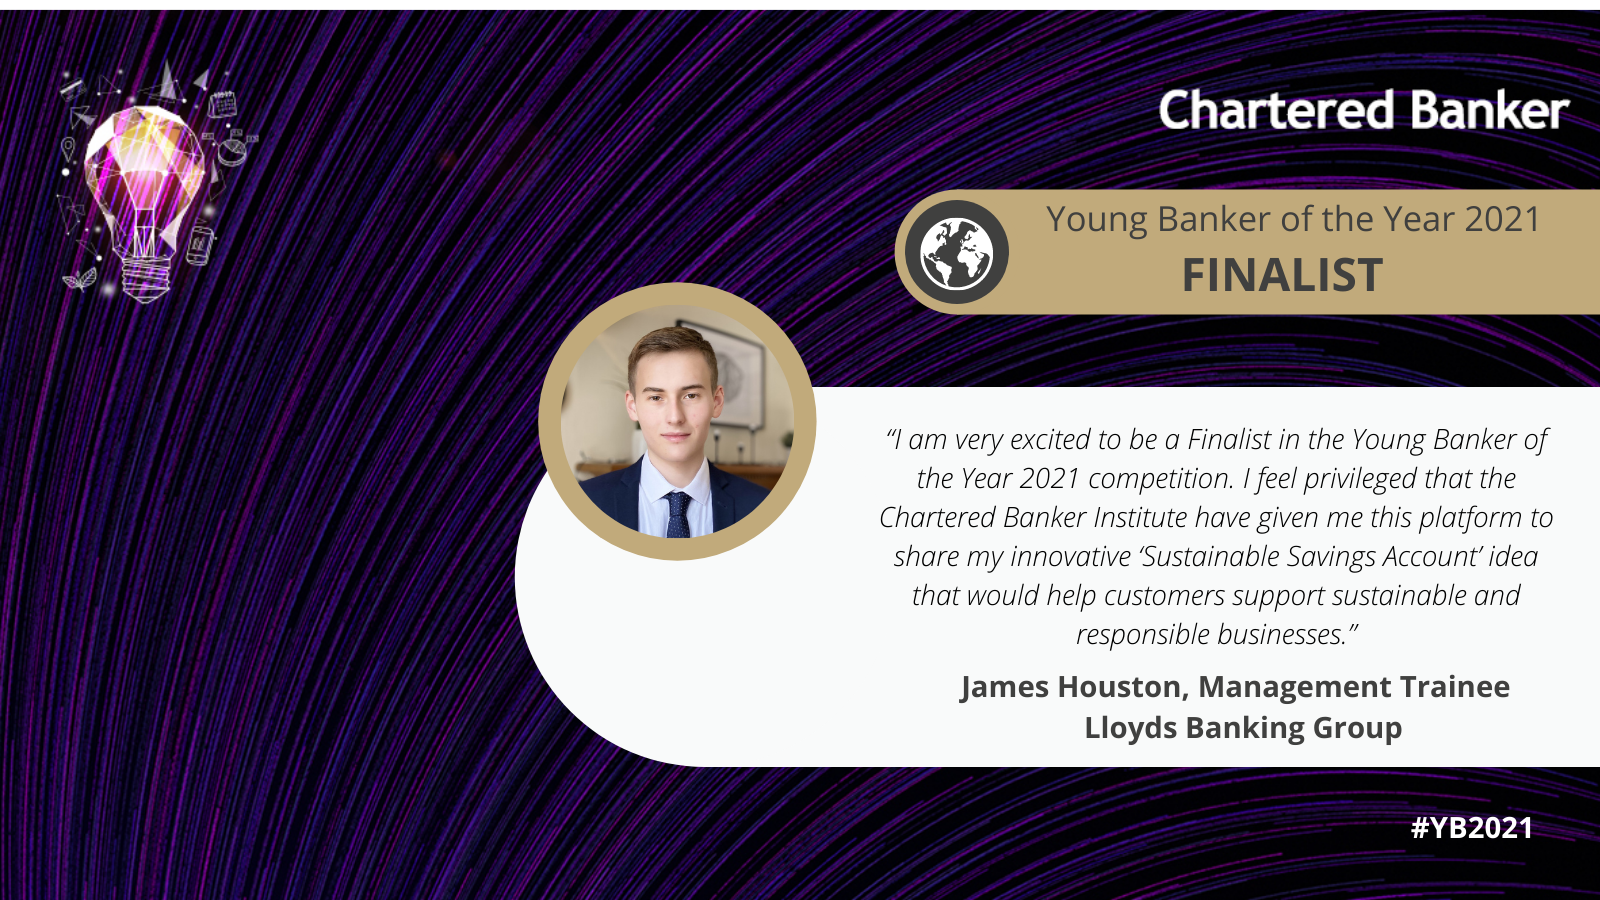 Young Banker of the Year 2021 - James Houston's Proposal